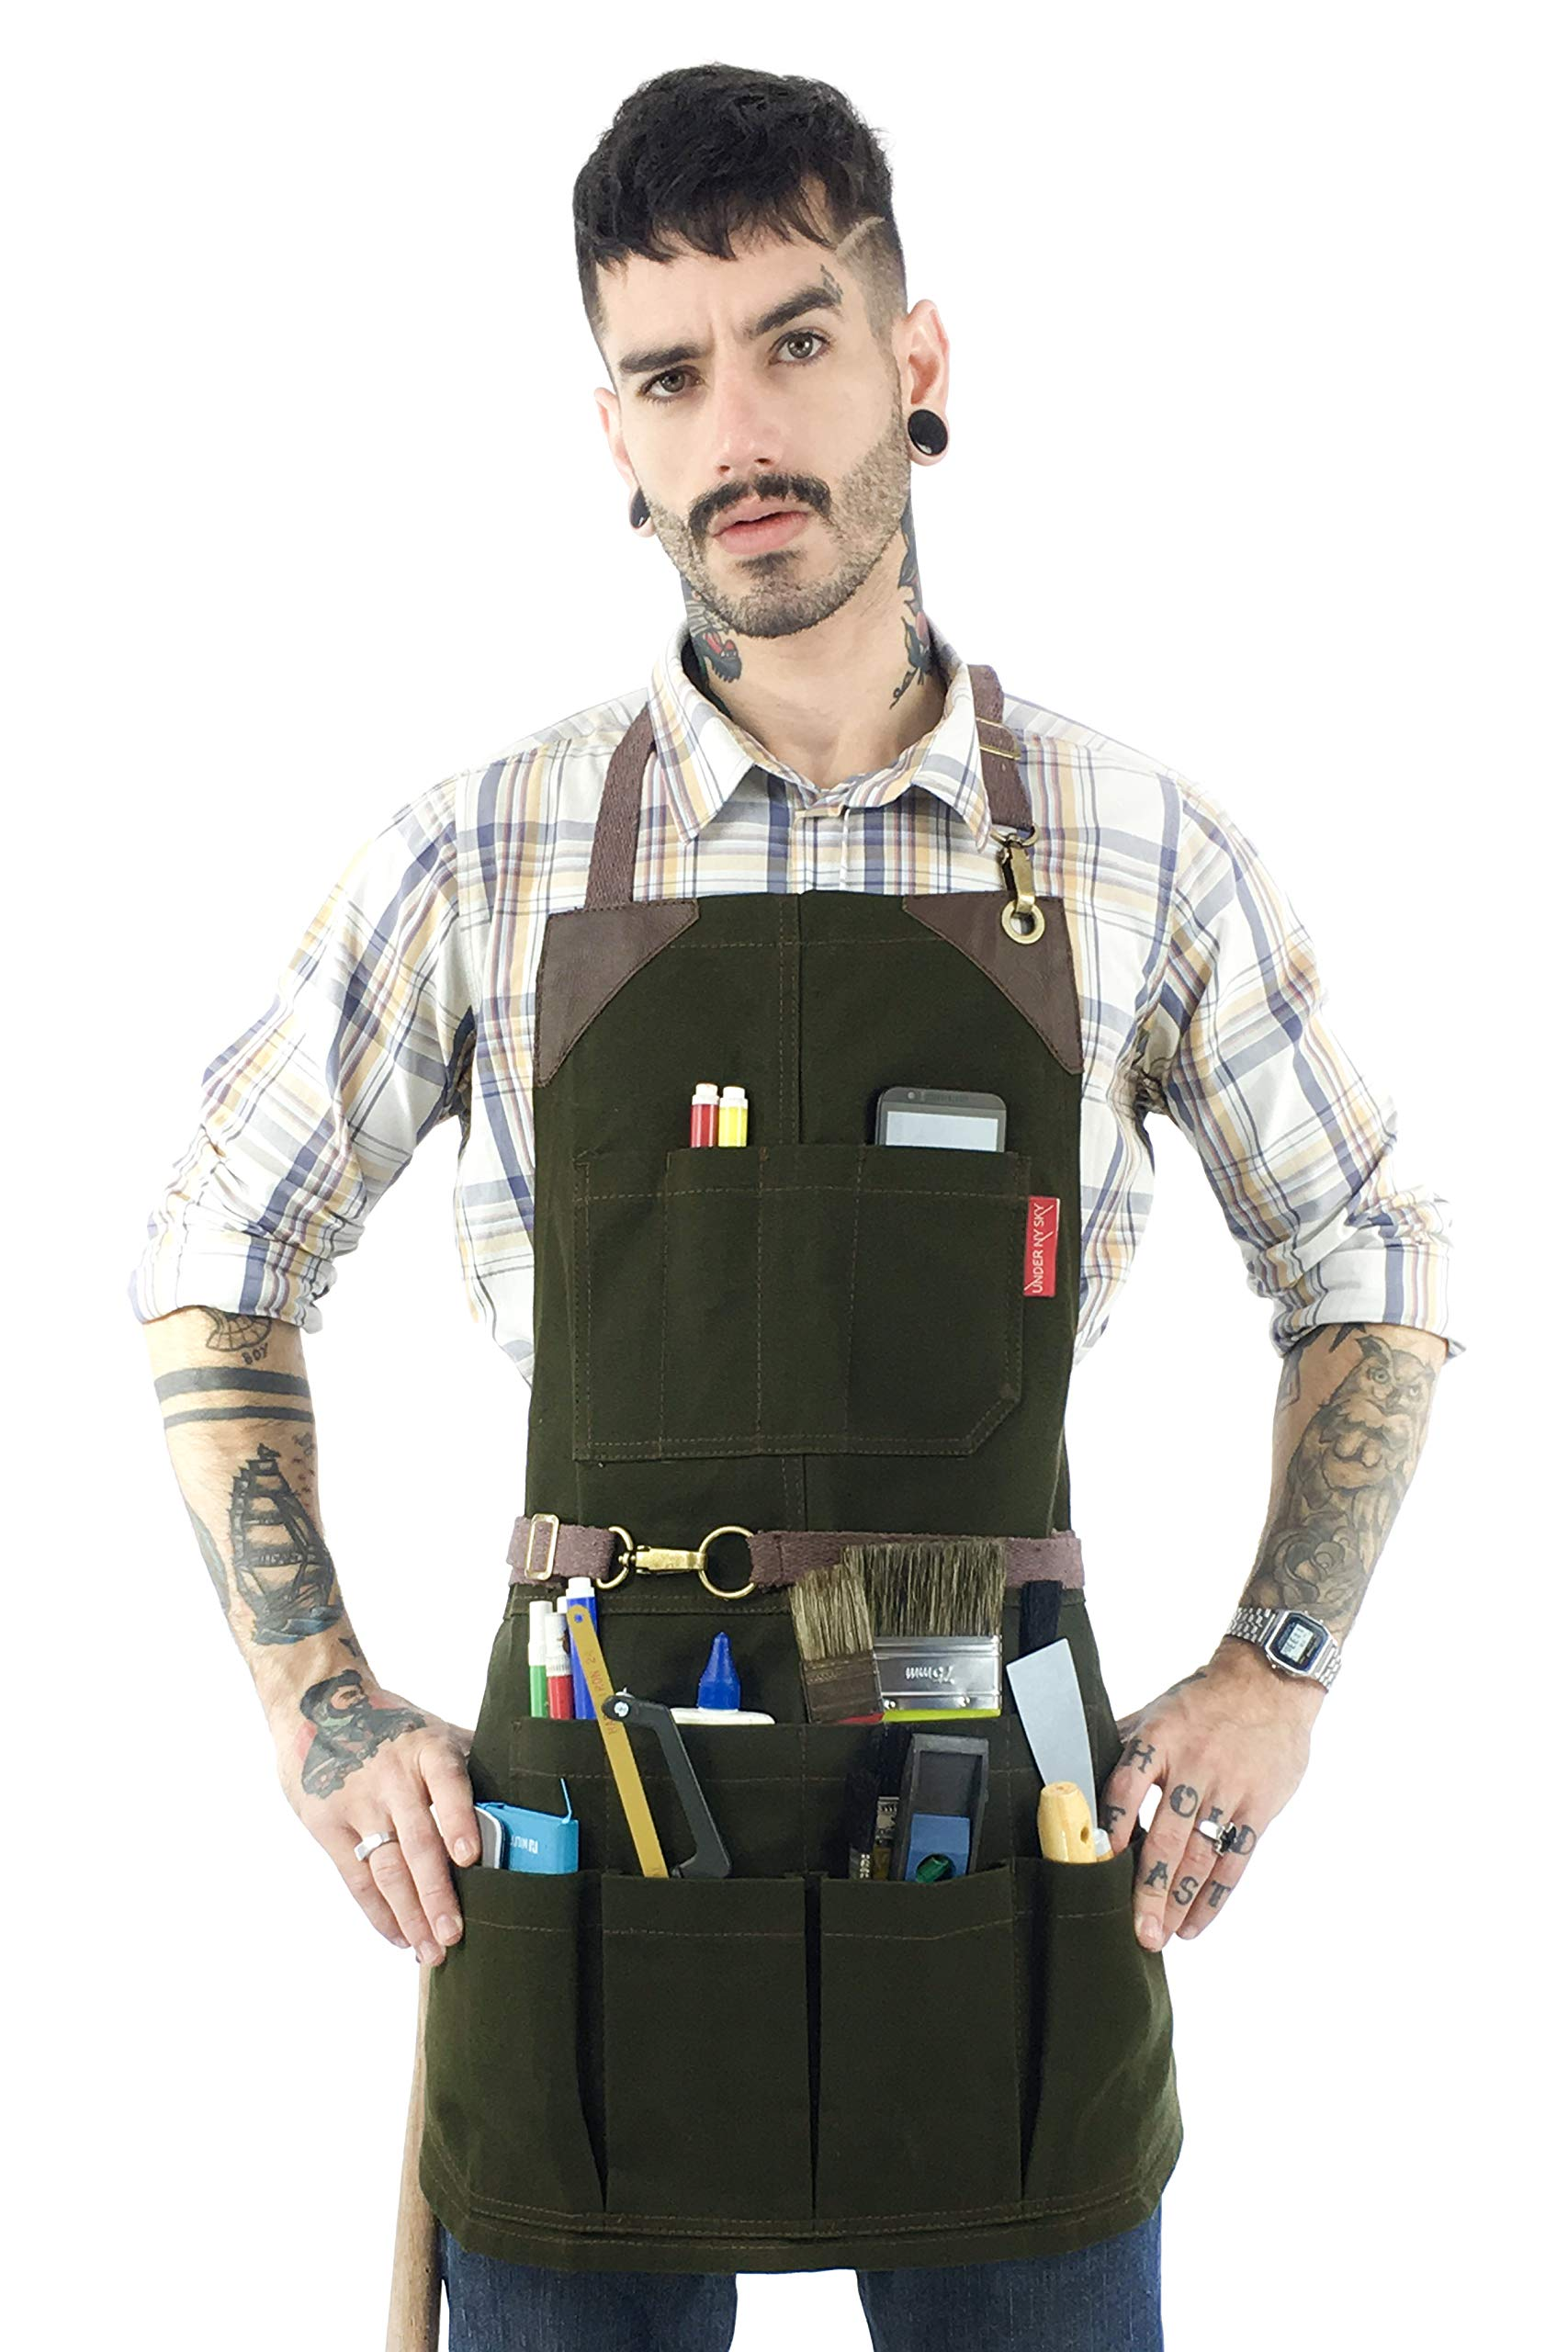 Under NY Sky Tool Forest Green Apron – Heavy-Duty Waxed Canvas, Leather Reinforcement, Extra Pockets – Adjustable for Men and Women – Pro Mechanic, Woodworker, Blacksmith, Plummer, Electrician Aprons